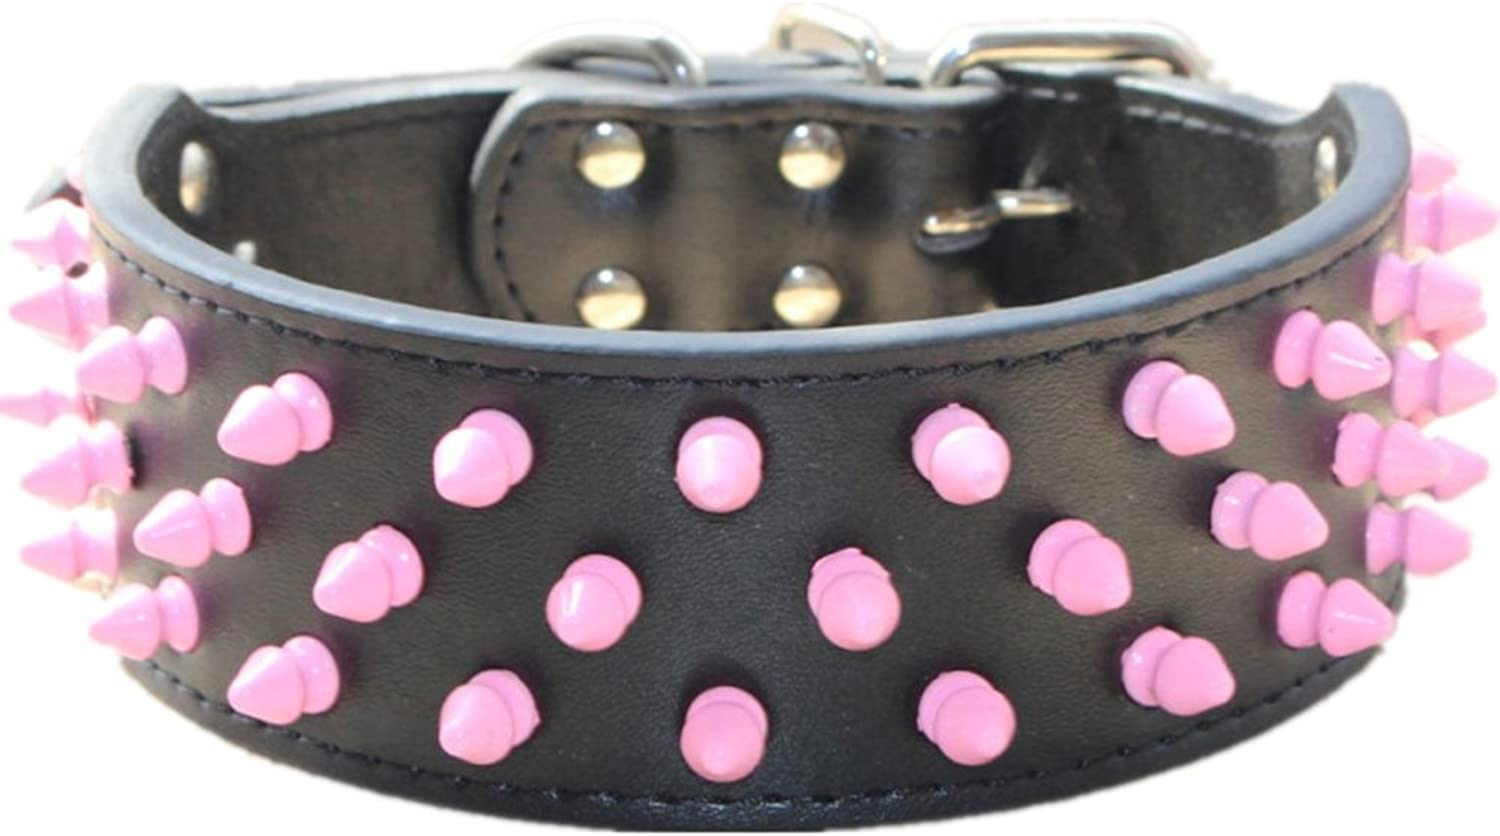 Haoyueer 2 inch Wide Leather Dog Collars Cool Pink Spiked Studded Pet Dog Collar for Medium Large Dogs Pit Bull Mastiff Bully Boxer(Black,L)